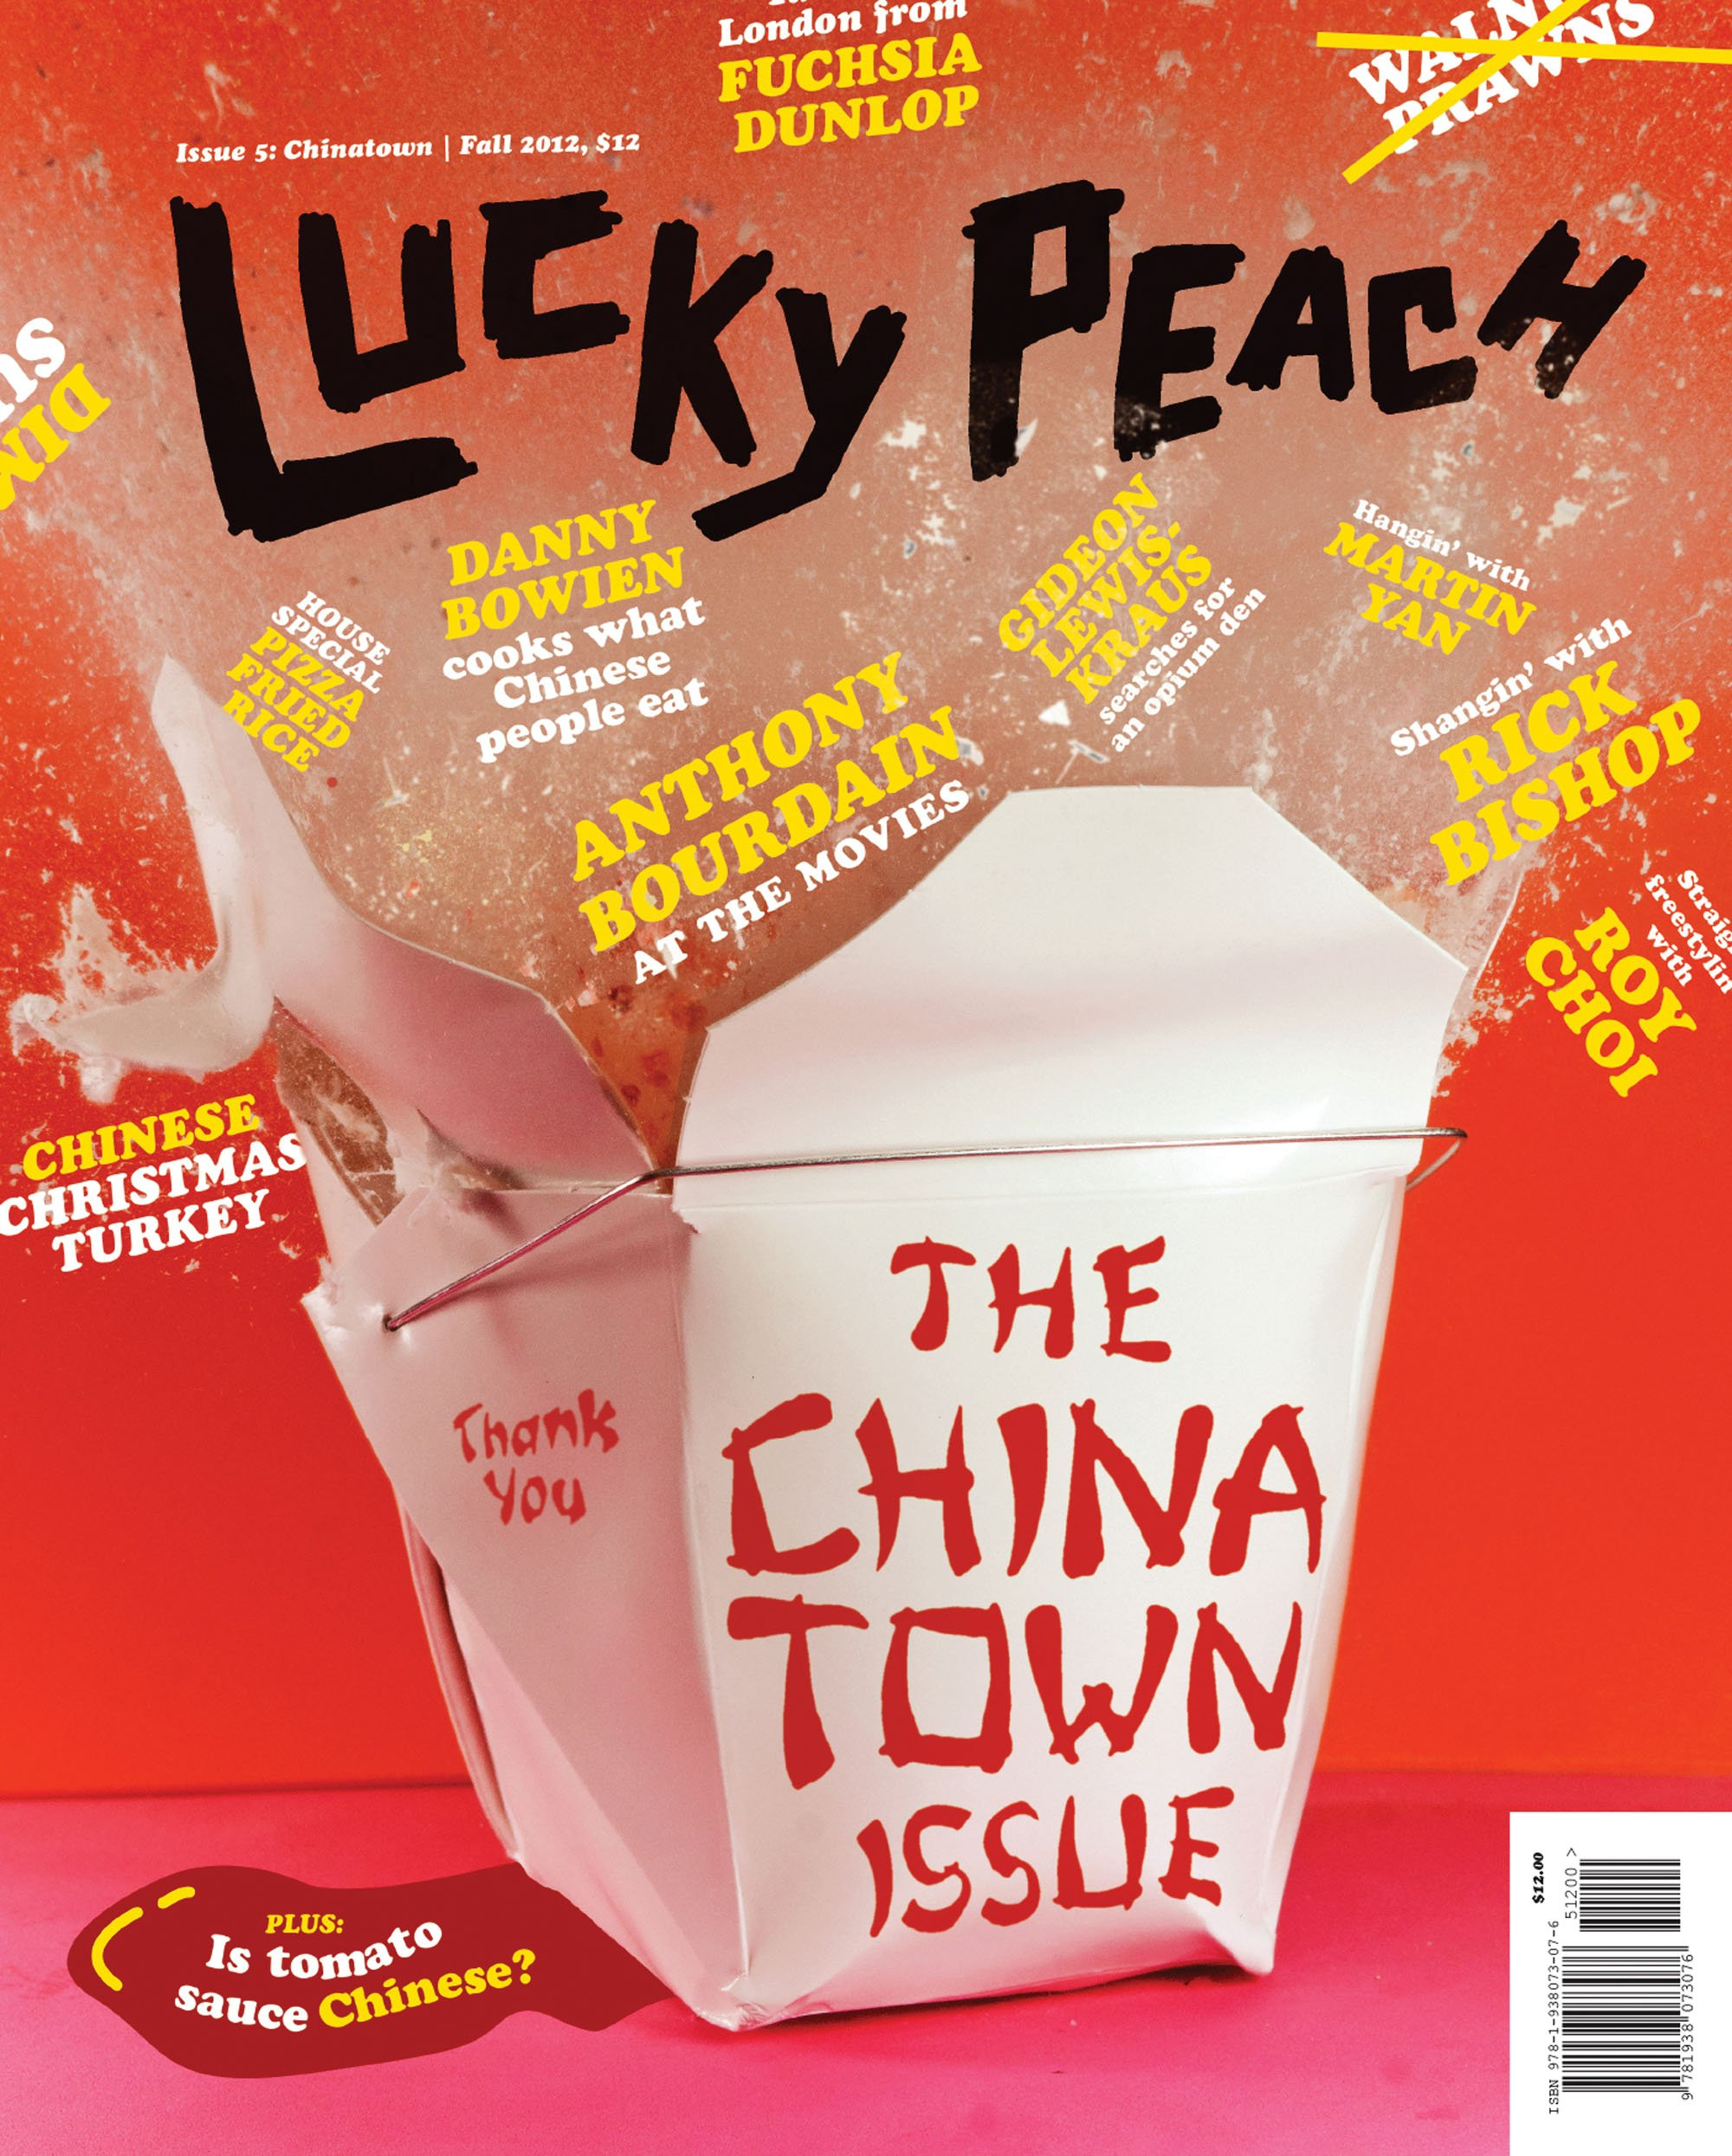 Issue pdf 1 peach lucky